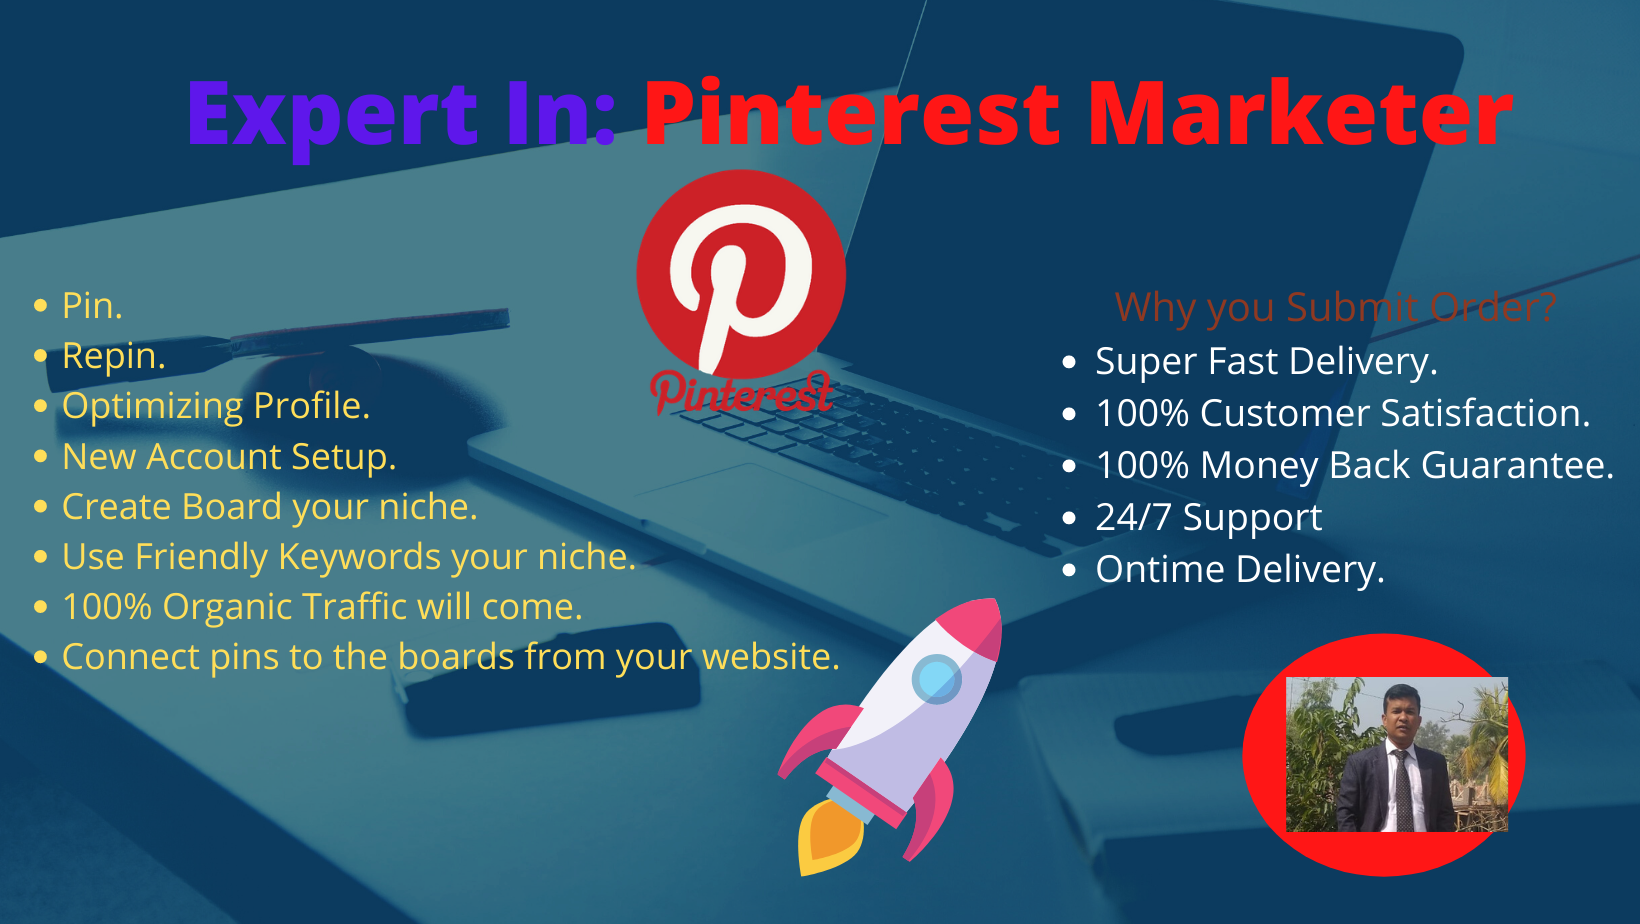 Provide White hat 5 Board and 10 Pins Pinterest Marketing